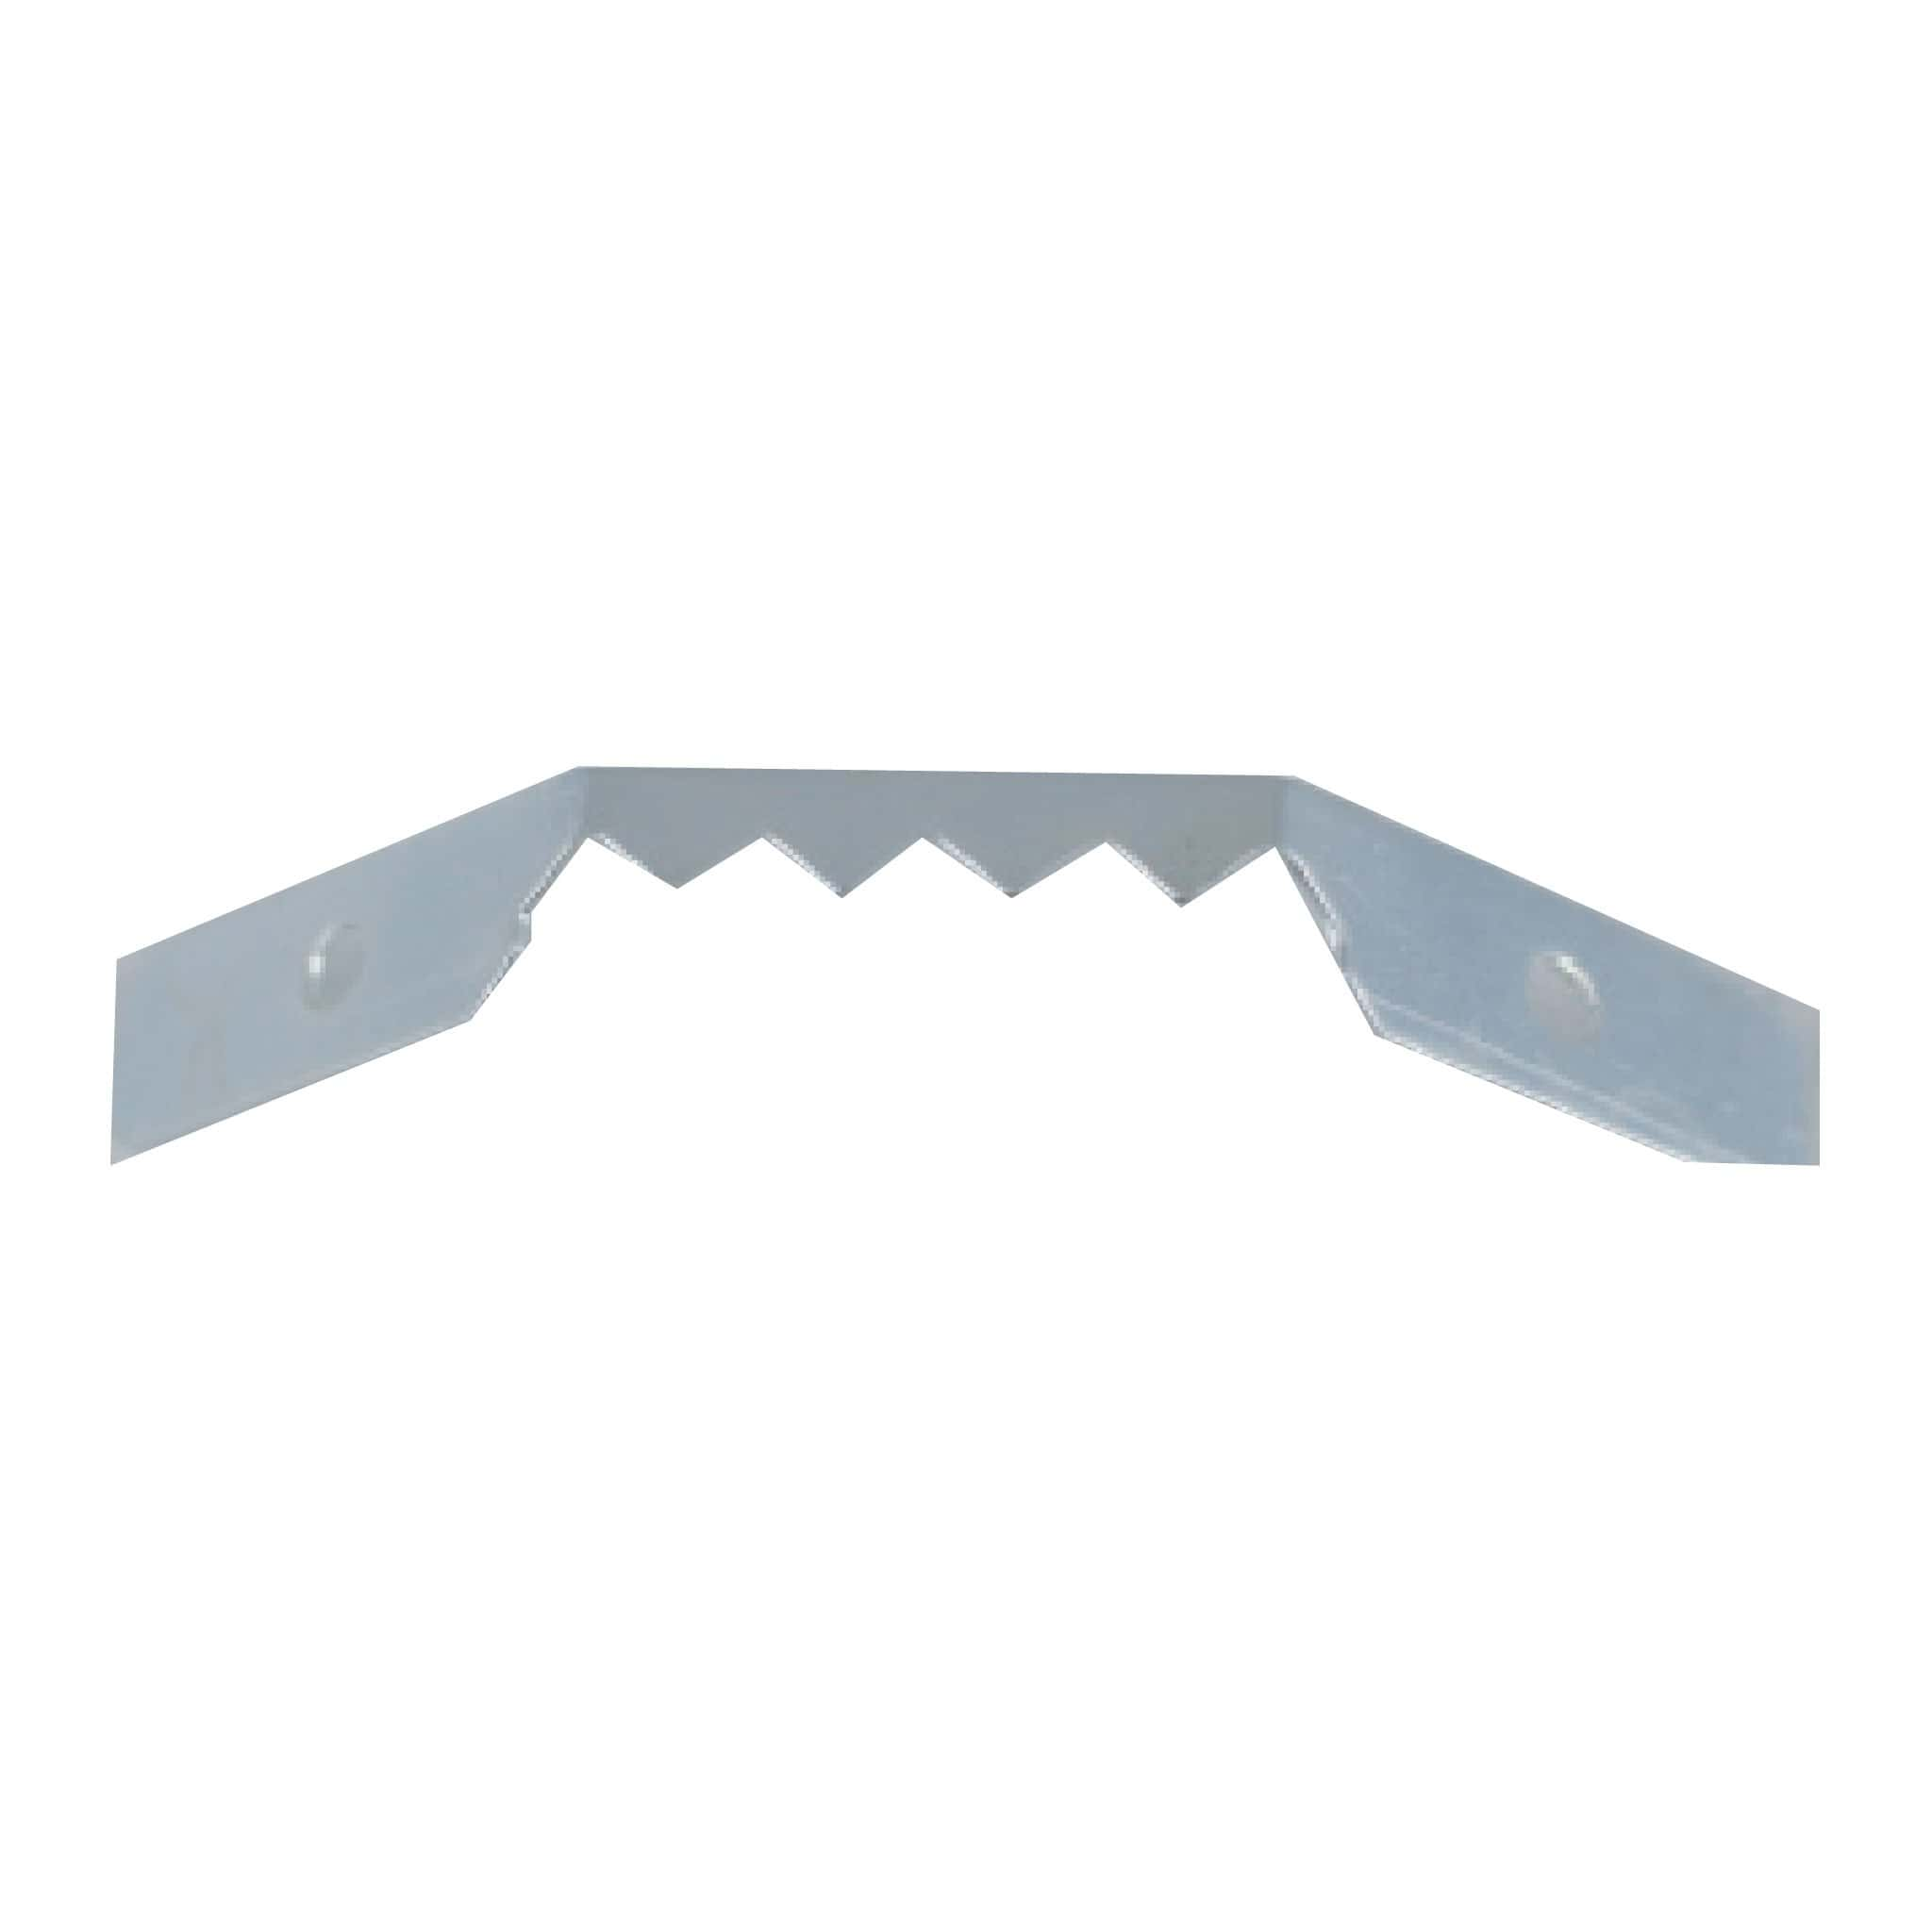 Snap In Recessed Sawtooth Hanger - ST2010 - pack of 100